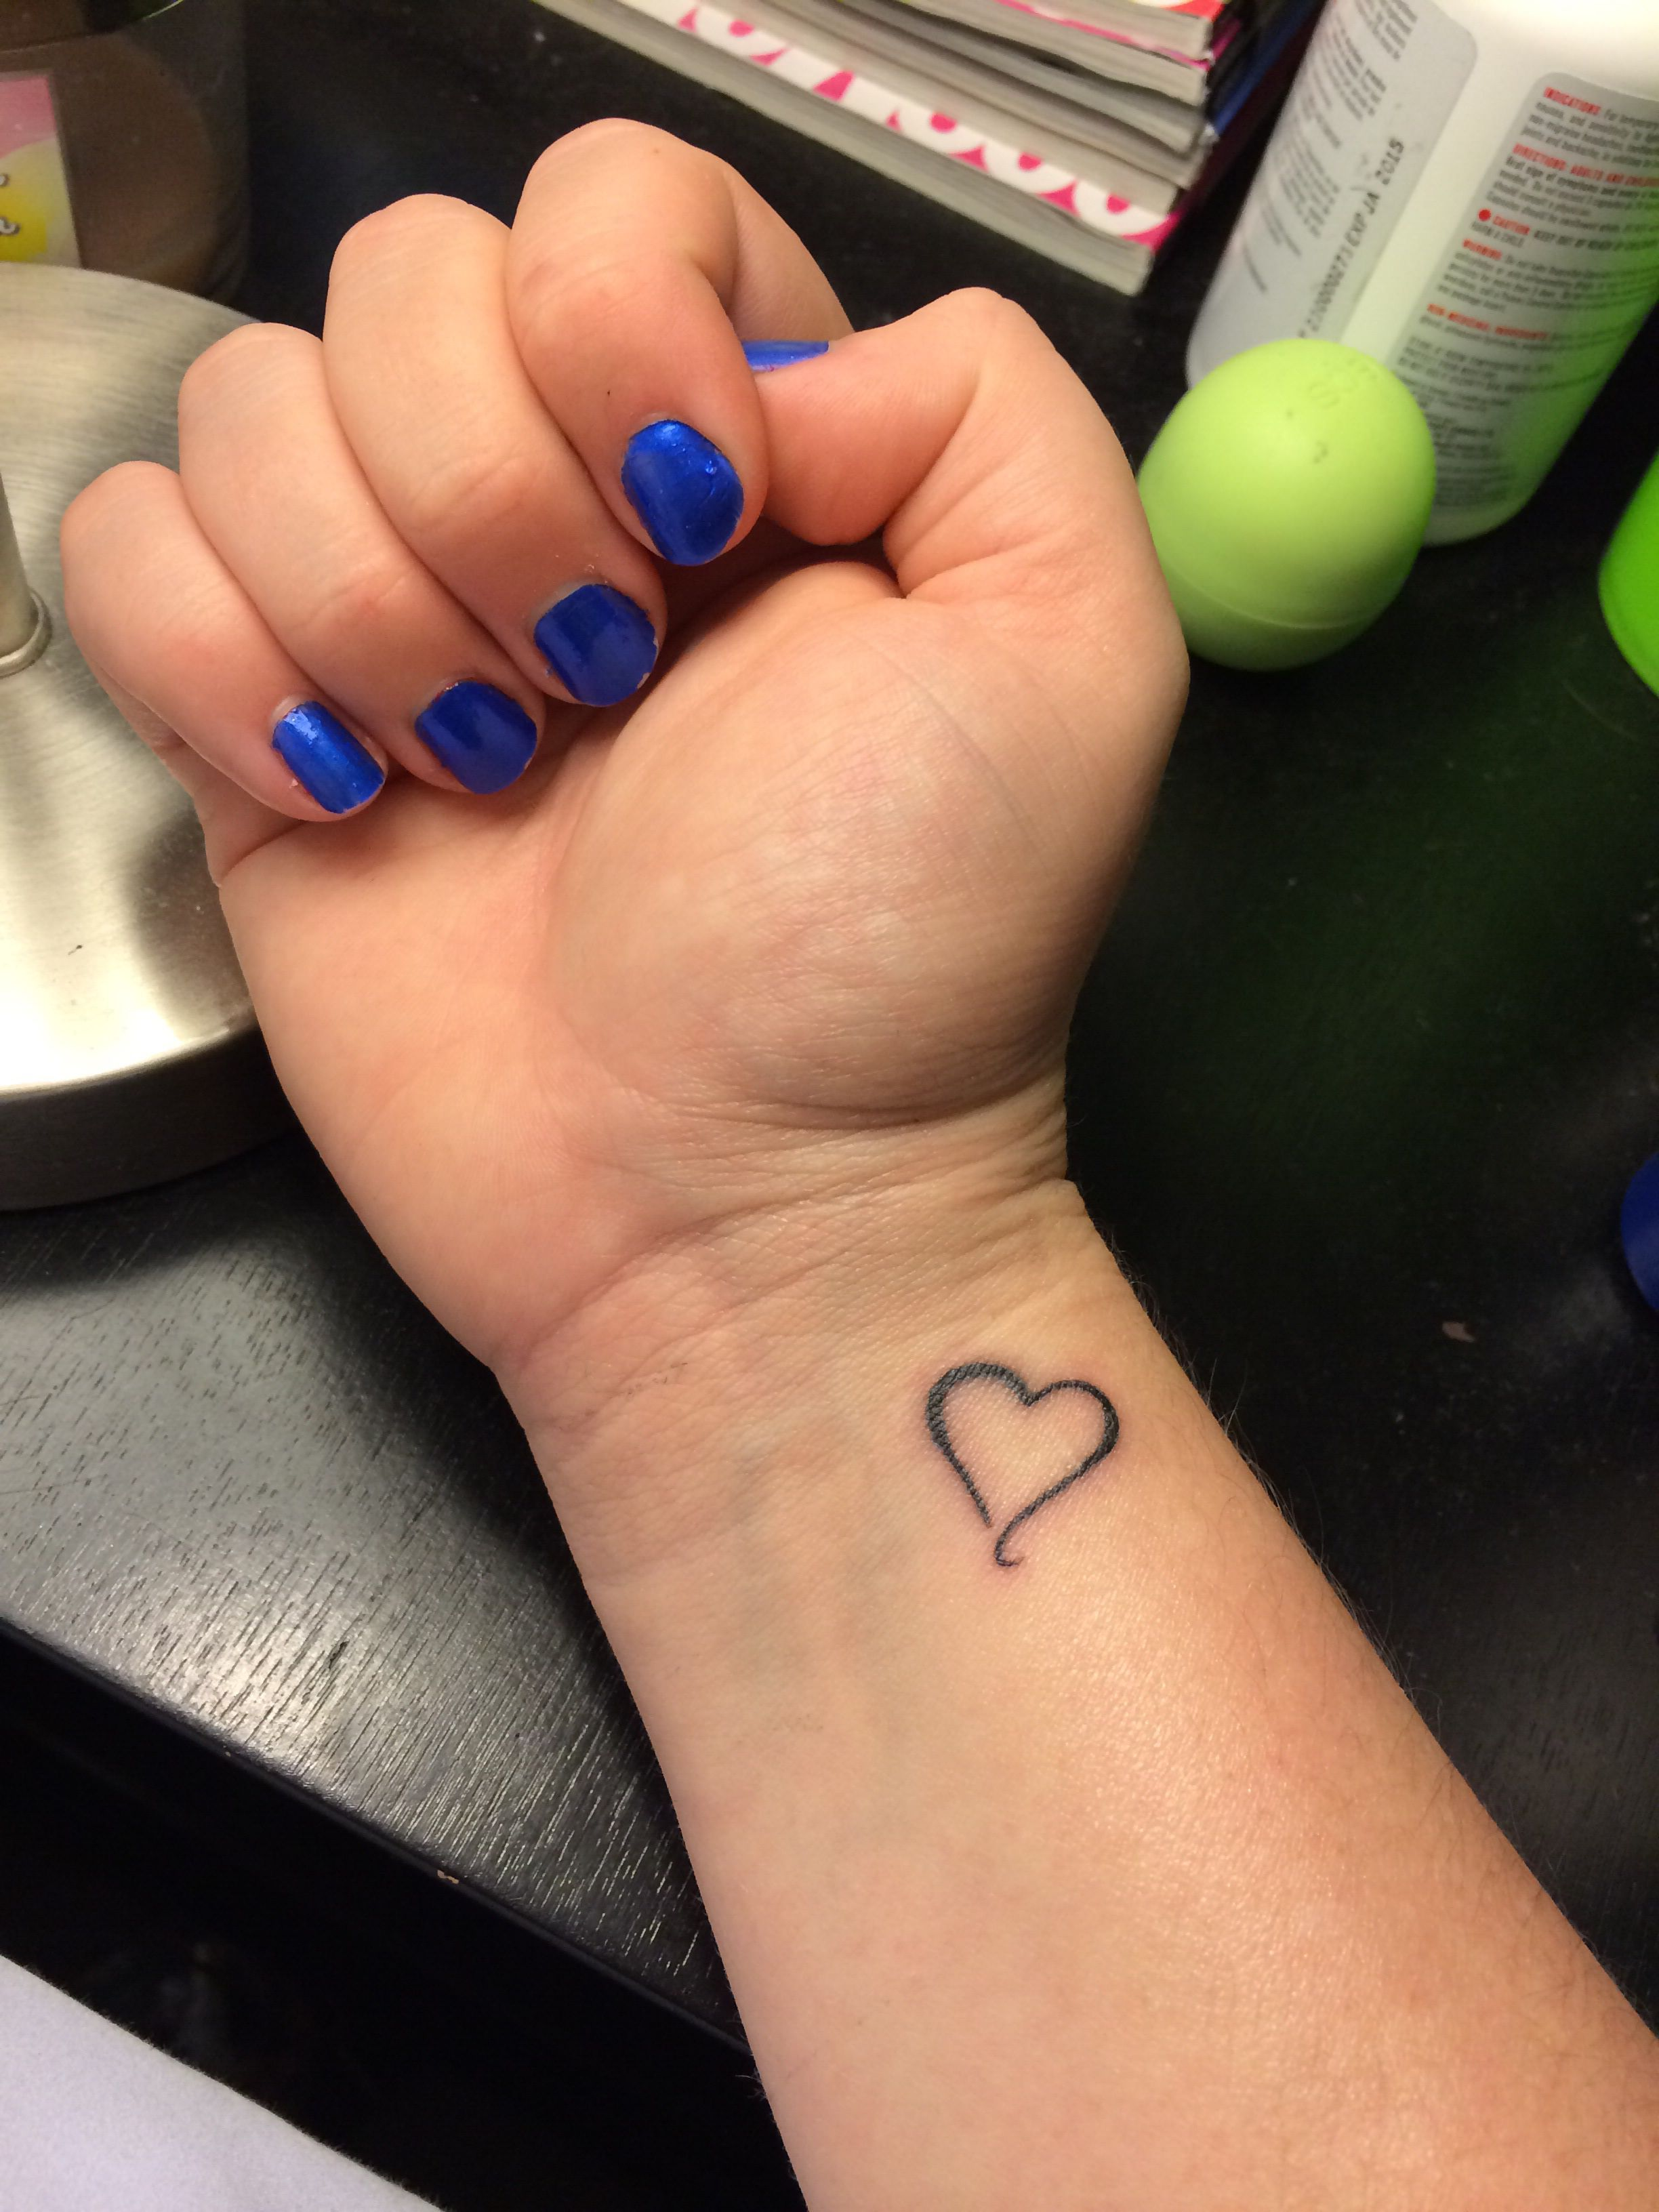 Pin By Vicki Gutman On Tattoos Small Heart Wrist Tattoo Wrist Tattoos For Guys Small Wrist Tattoos